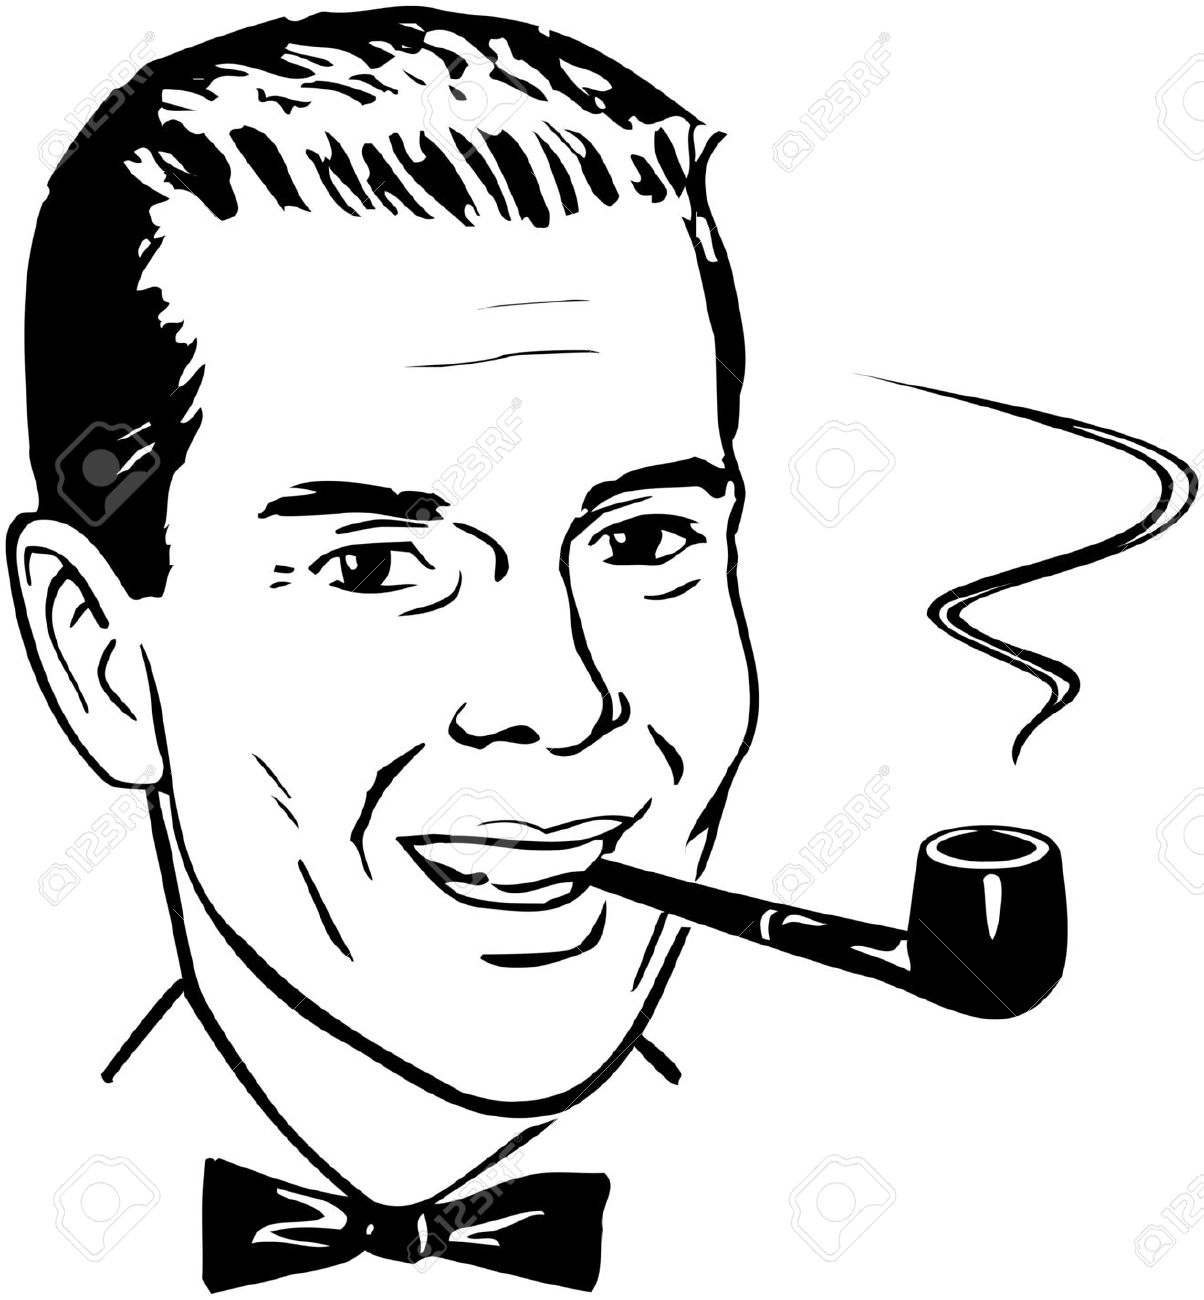 Pipe Smoking Chap Royalty Free Cliparts, Vectors, And Stock.